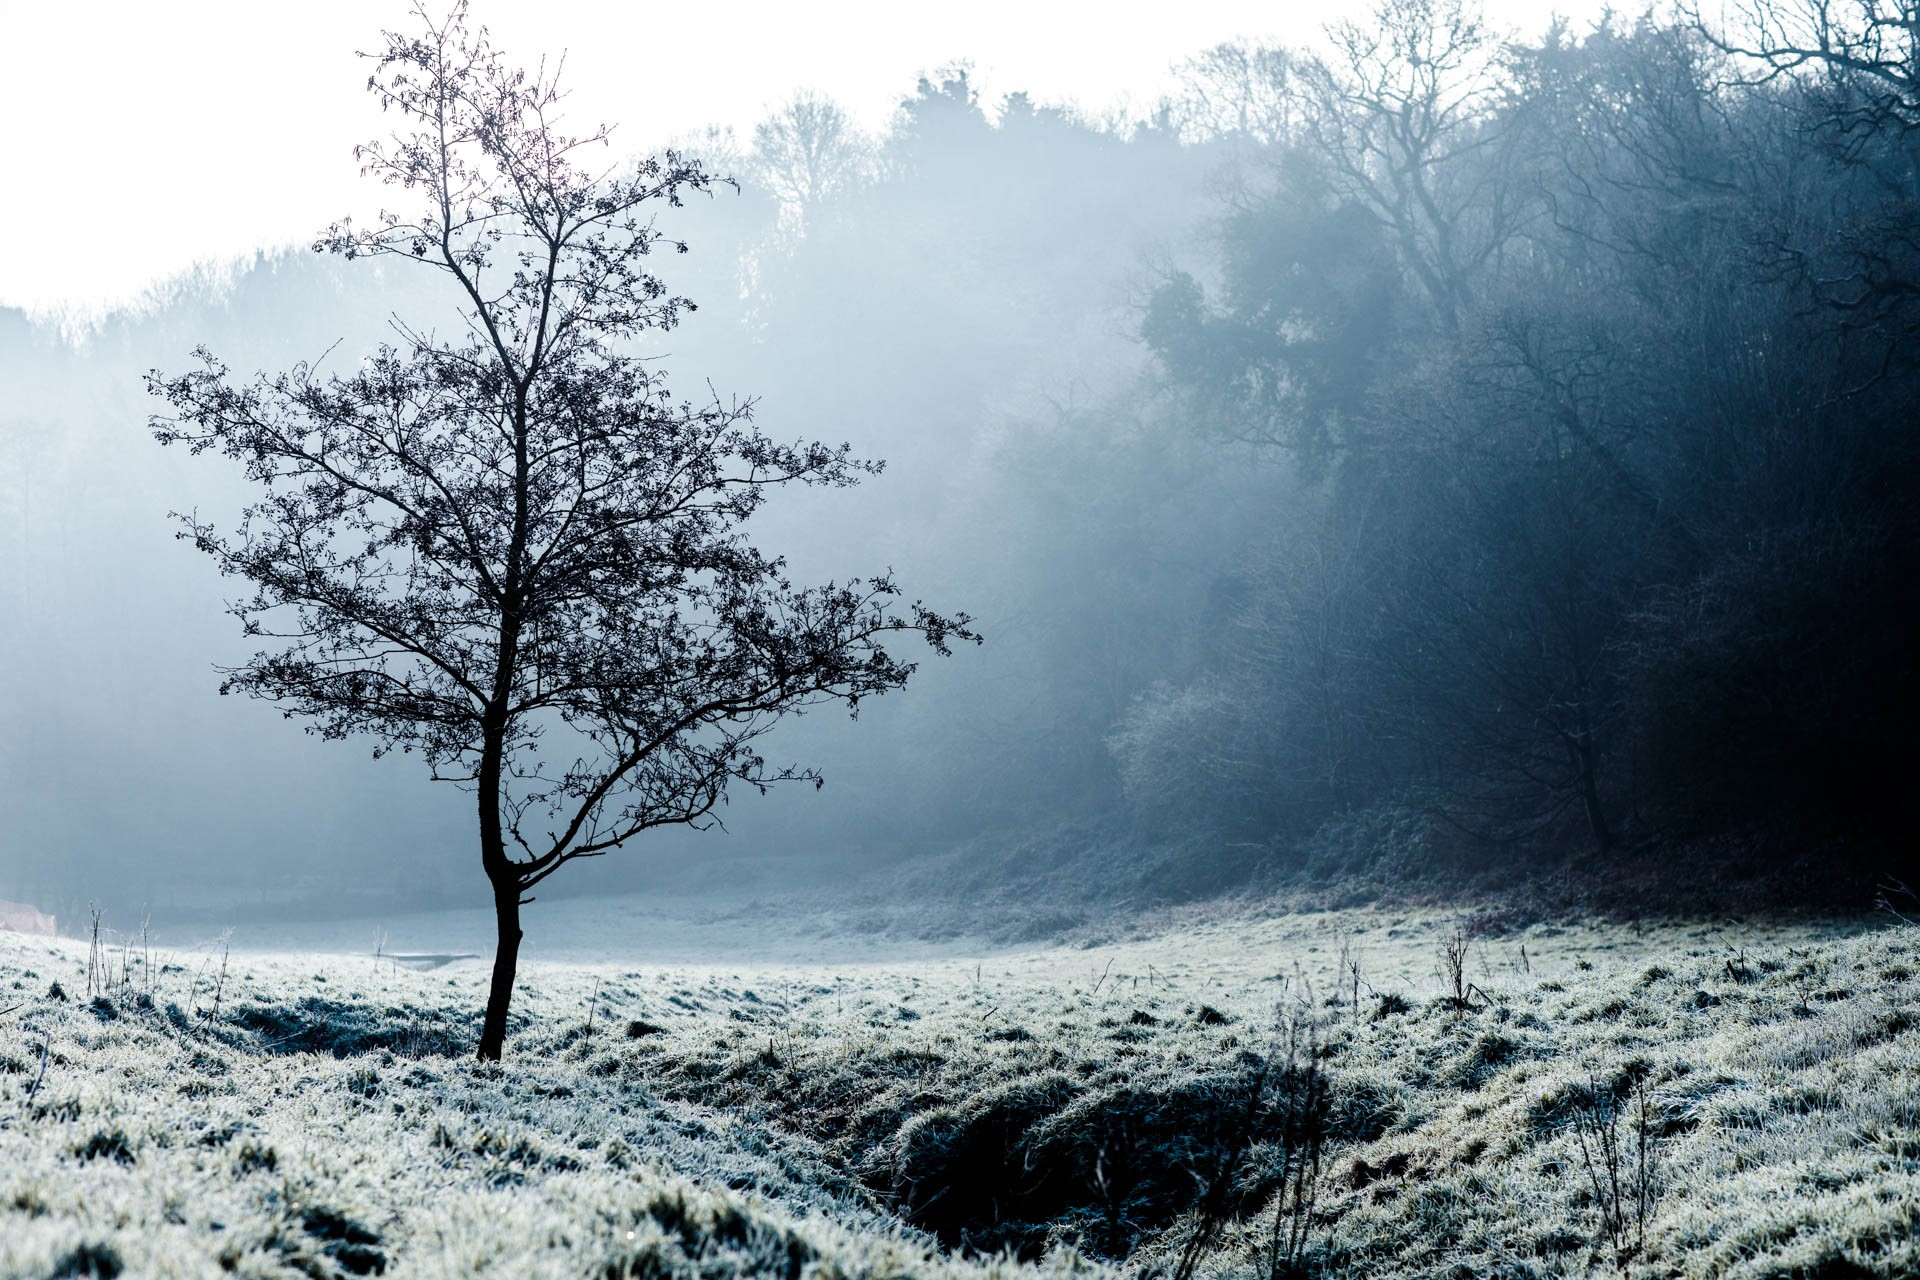 Frosty scene at St Peter's Valley